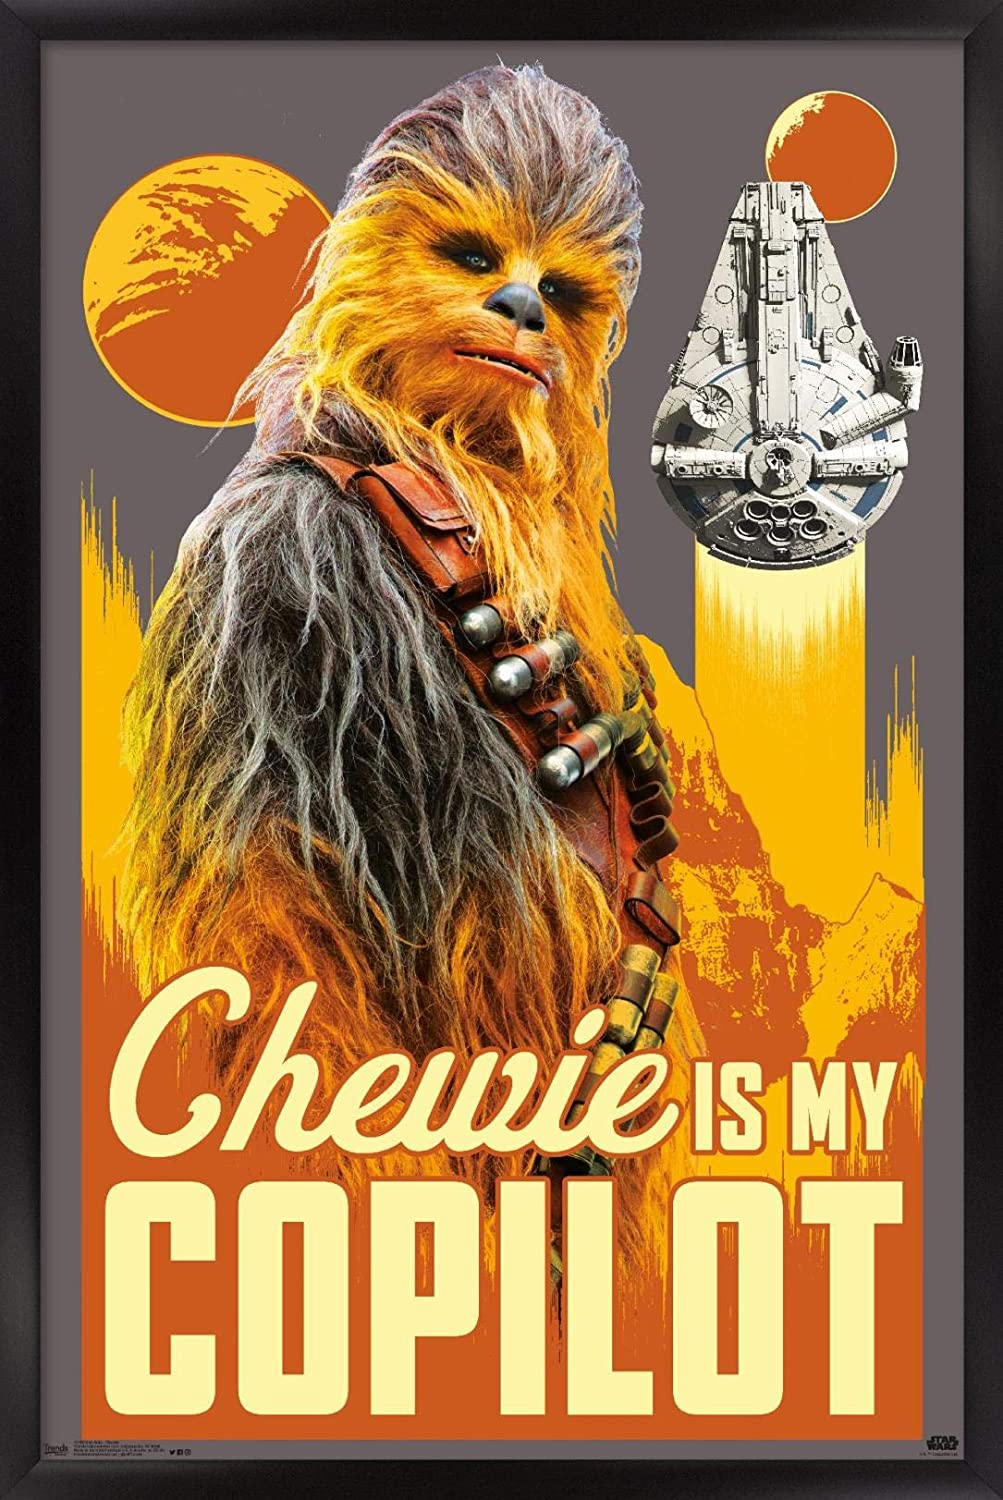 New Orleans Mail order Mall Trends International Star Wars: Solo Chewie Poster - Wall 14.72